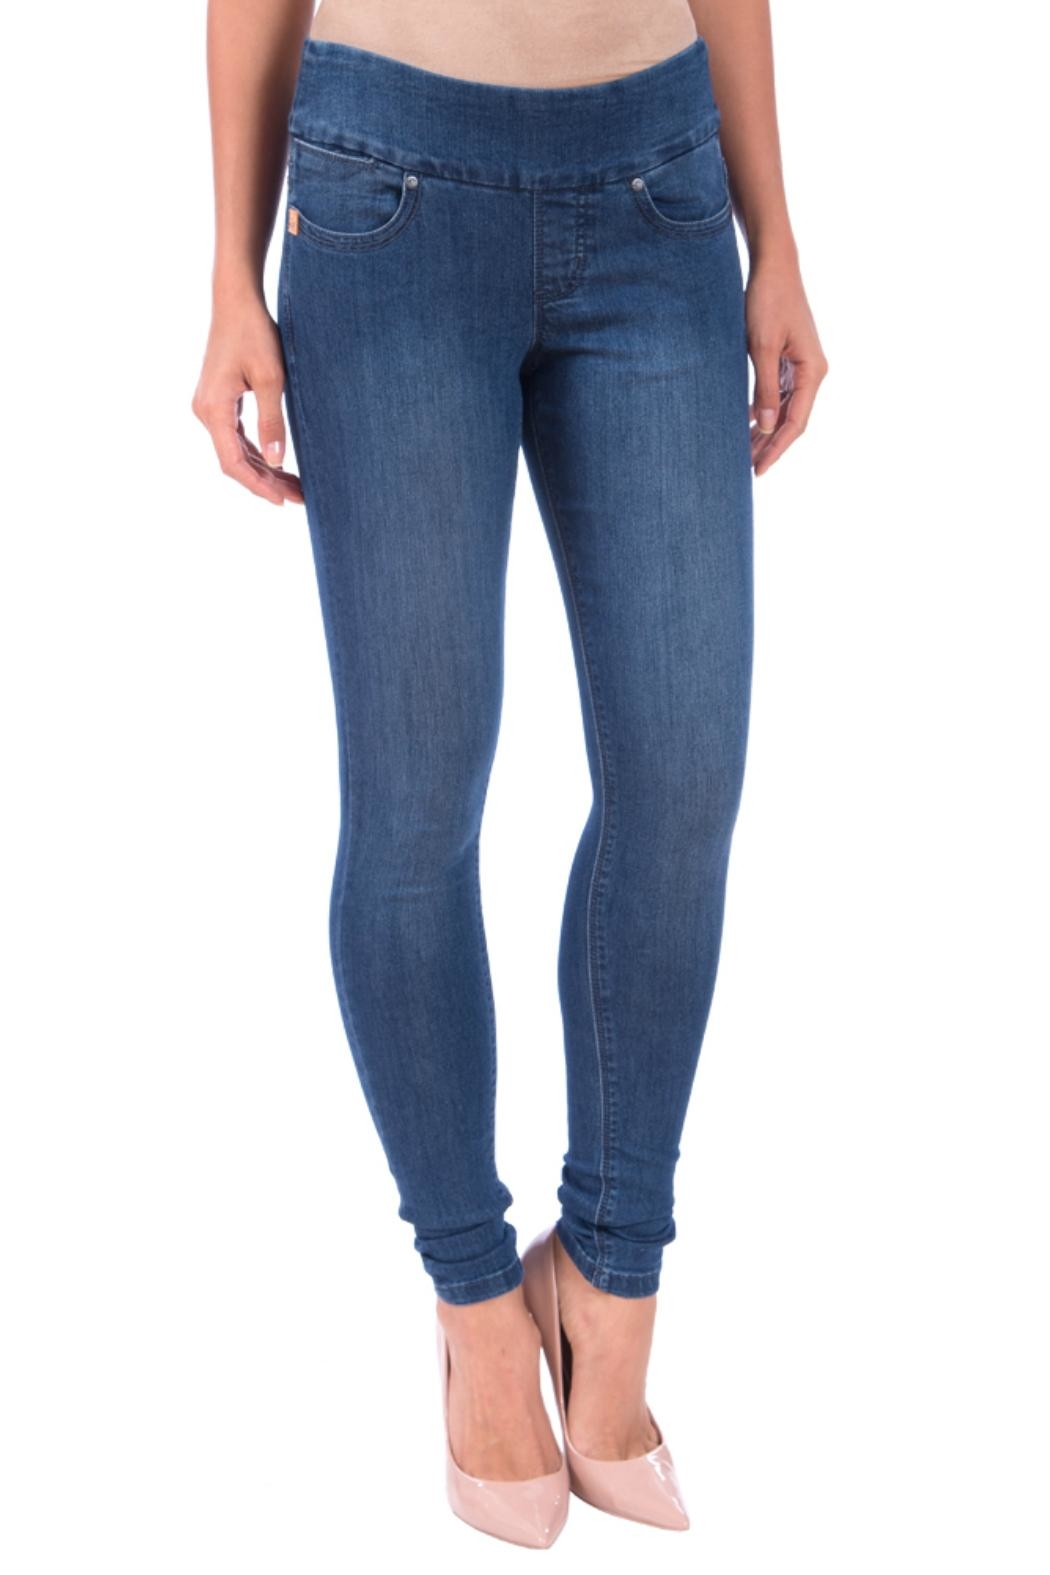 Lola Jeans Anna Pull On  Jeans - Front Cropped Image